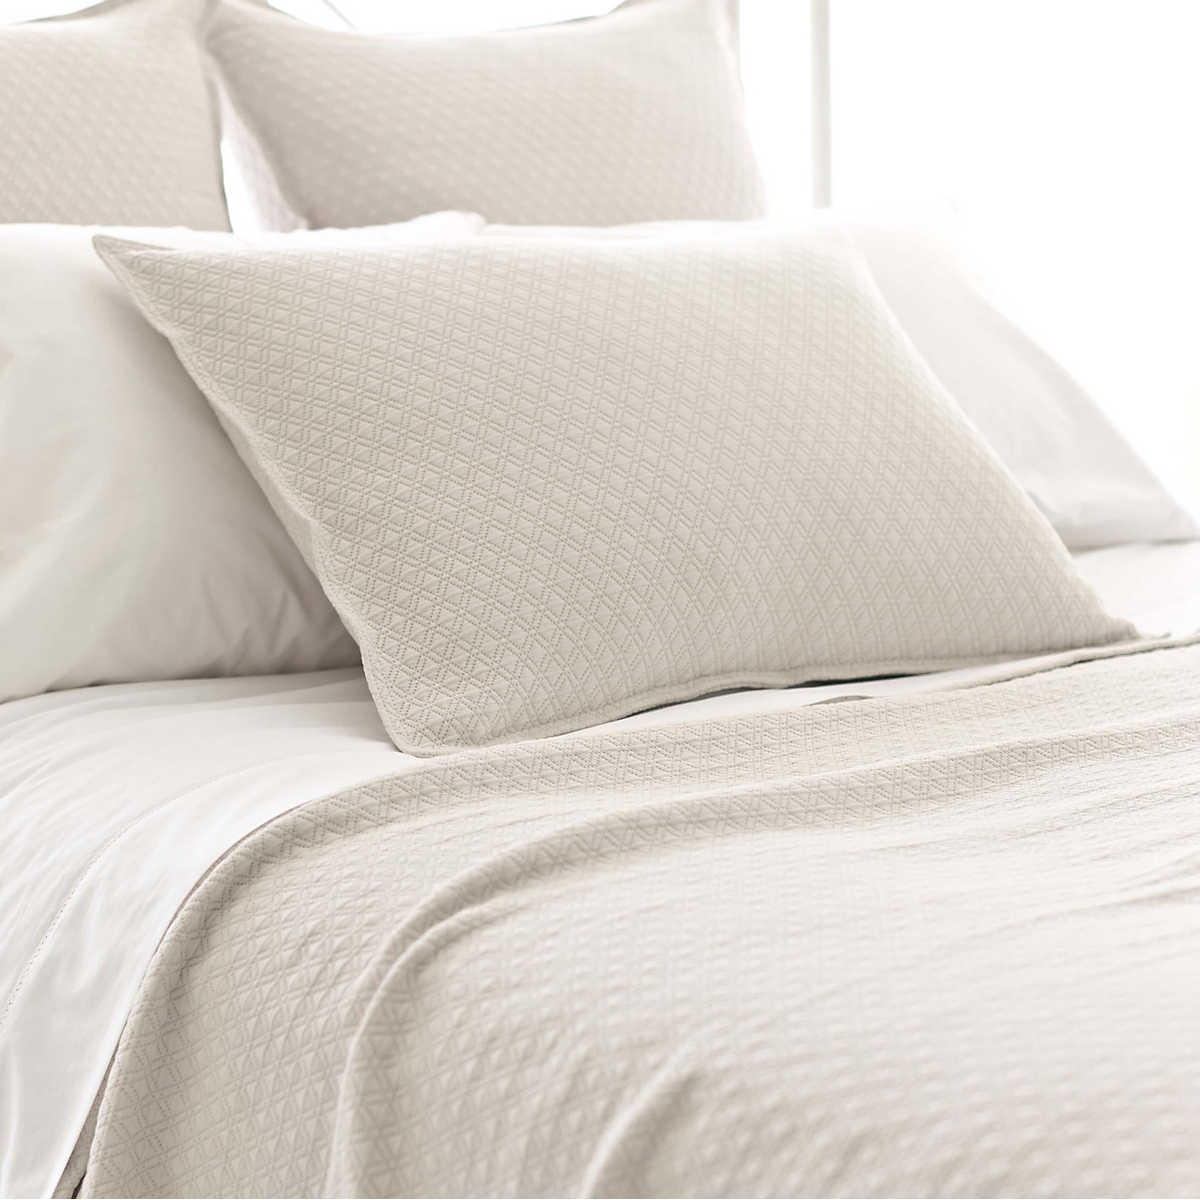 Diamond Platinum Matelass 233 Coverlet Pine Cone Hill